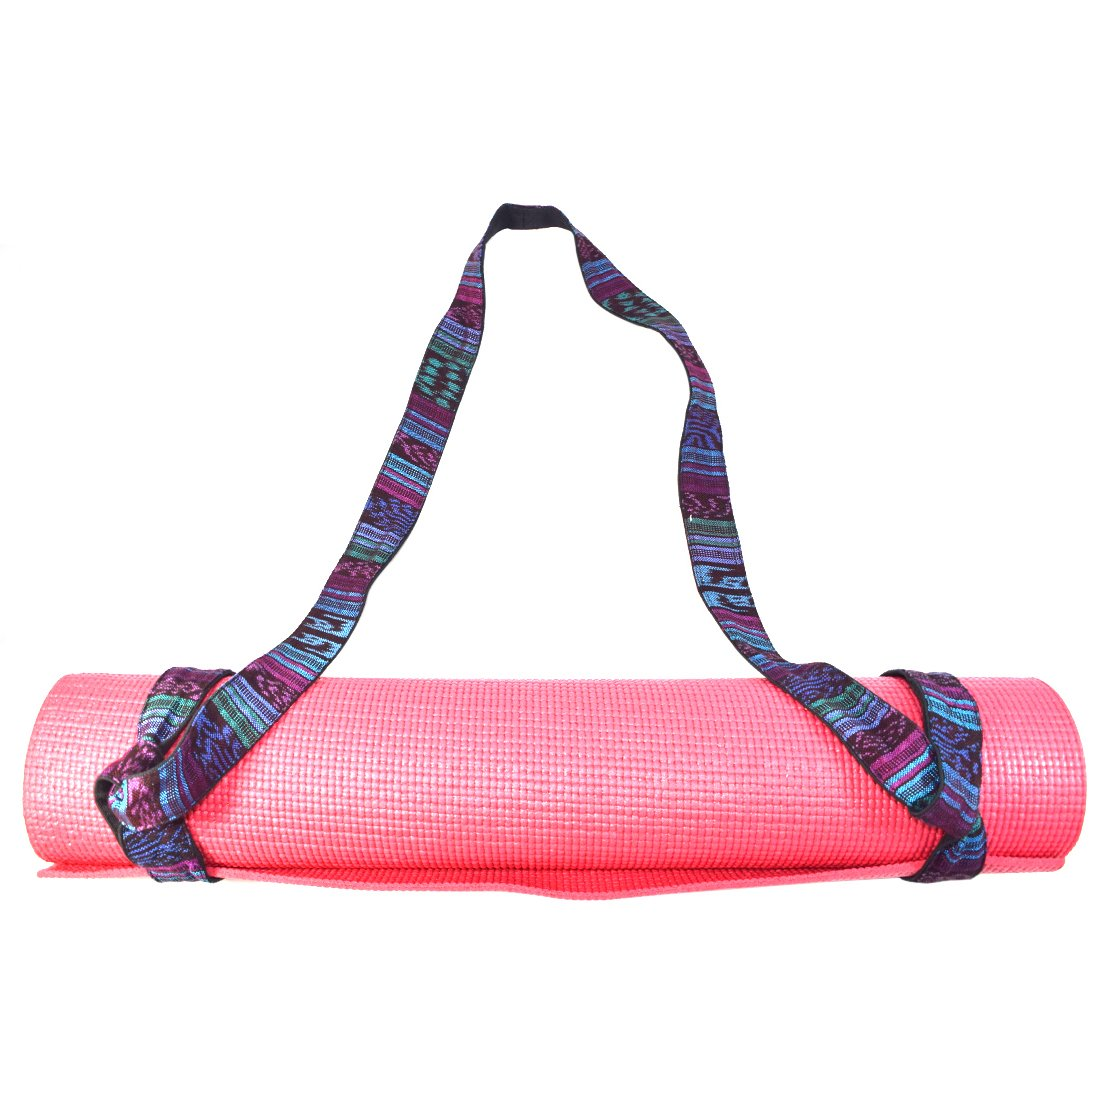 Santa Playa Yoga Mat Sling 6 Foot Handcrafted with Back Strap Loomed Native Tribal Textiles and Durable Cotton by Tropical Blue